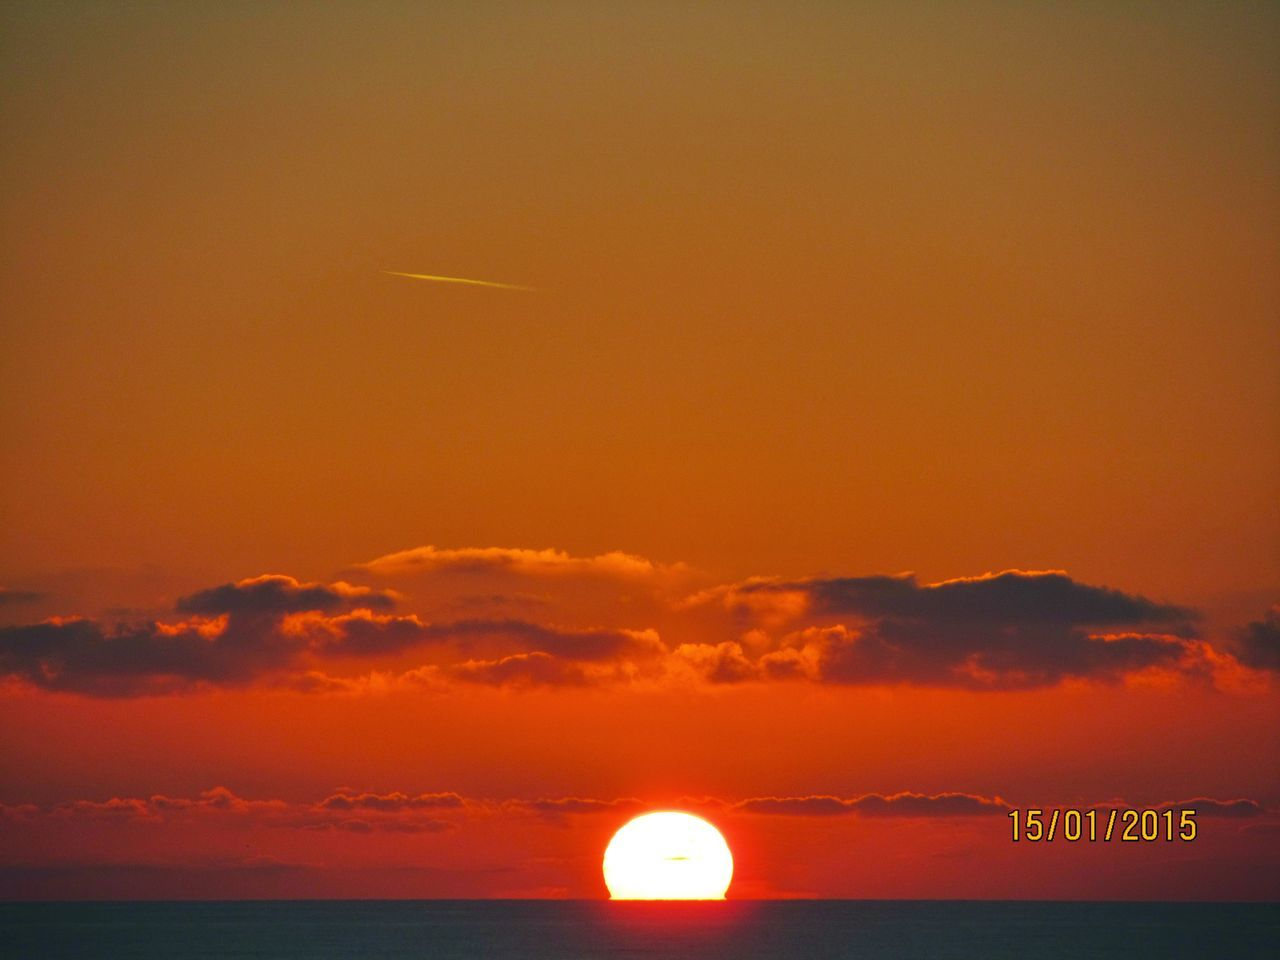 sunset, sky, scenics, beauty in nature, tranquility, nature, tranquil scene, sun, sea, outdoors, no people, cloud - sky, horizon over water, horizon, water, day